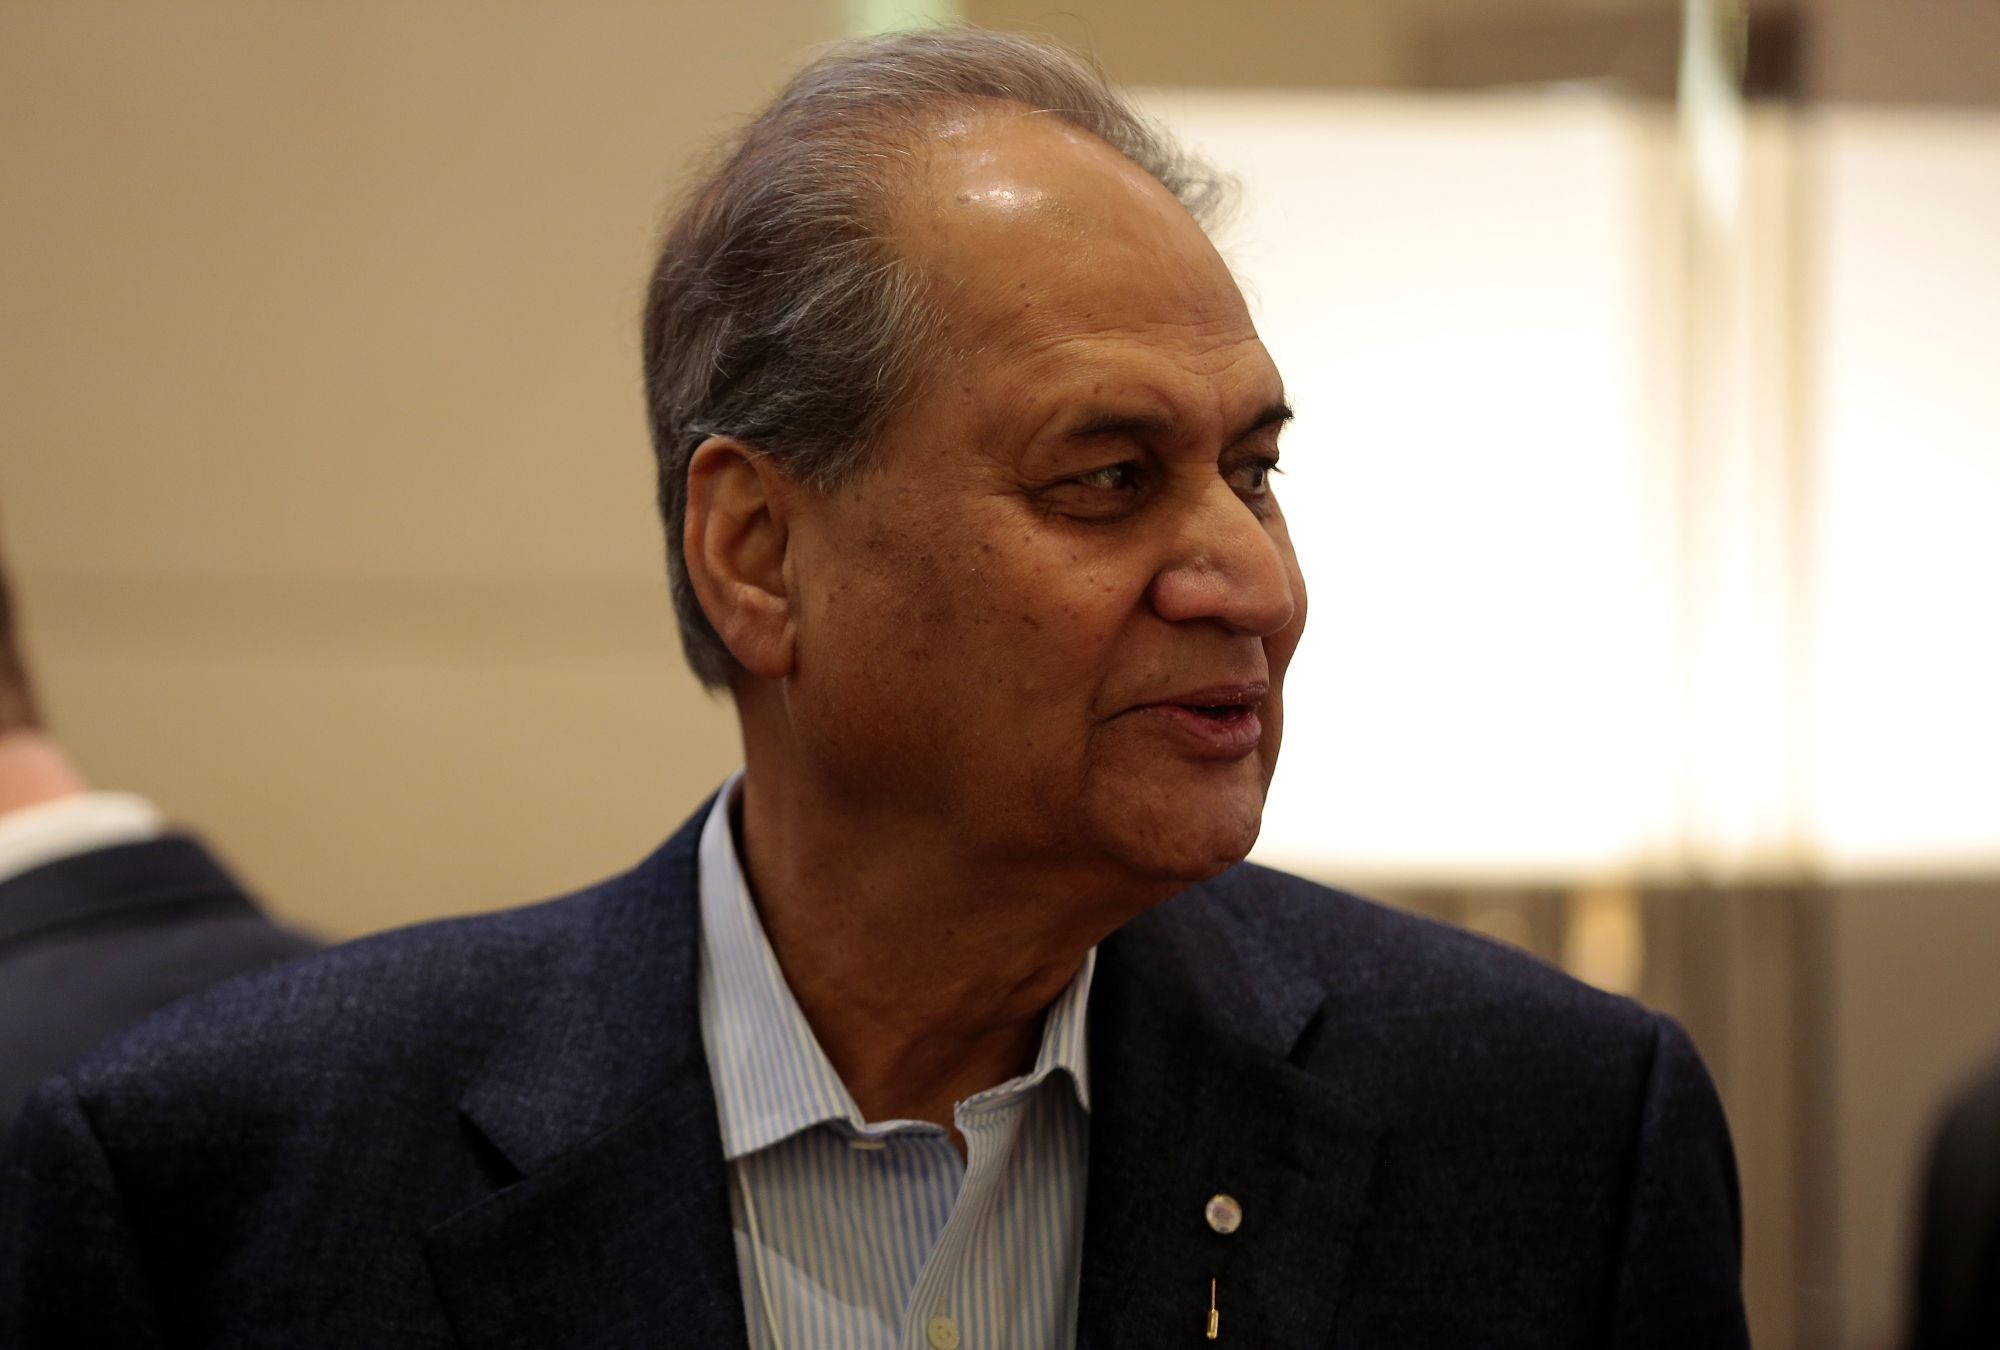 Billionaire Says Companies Fear Criticizing India Government